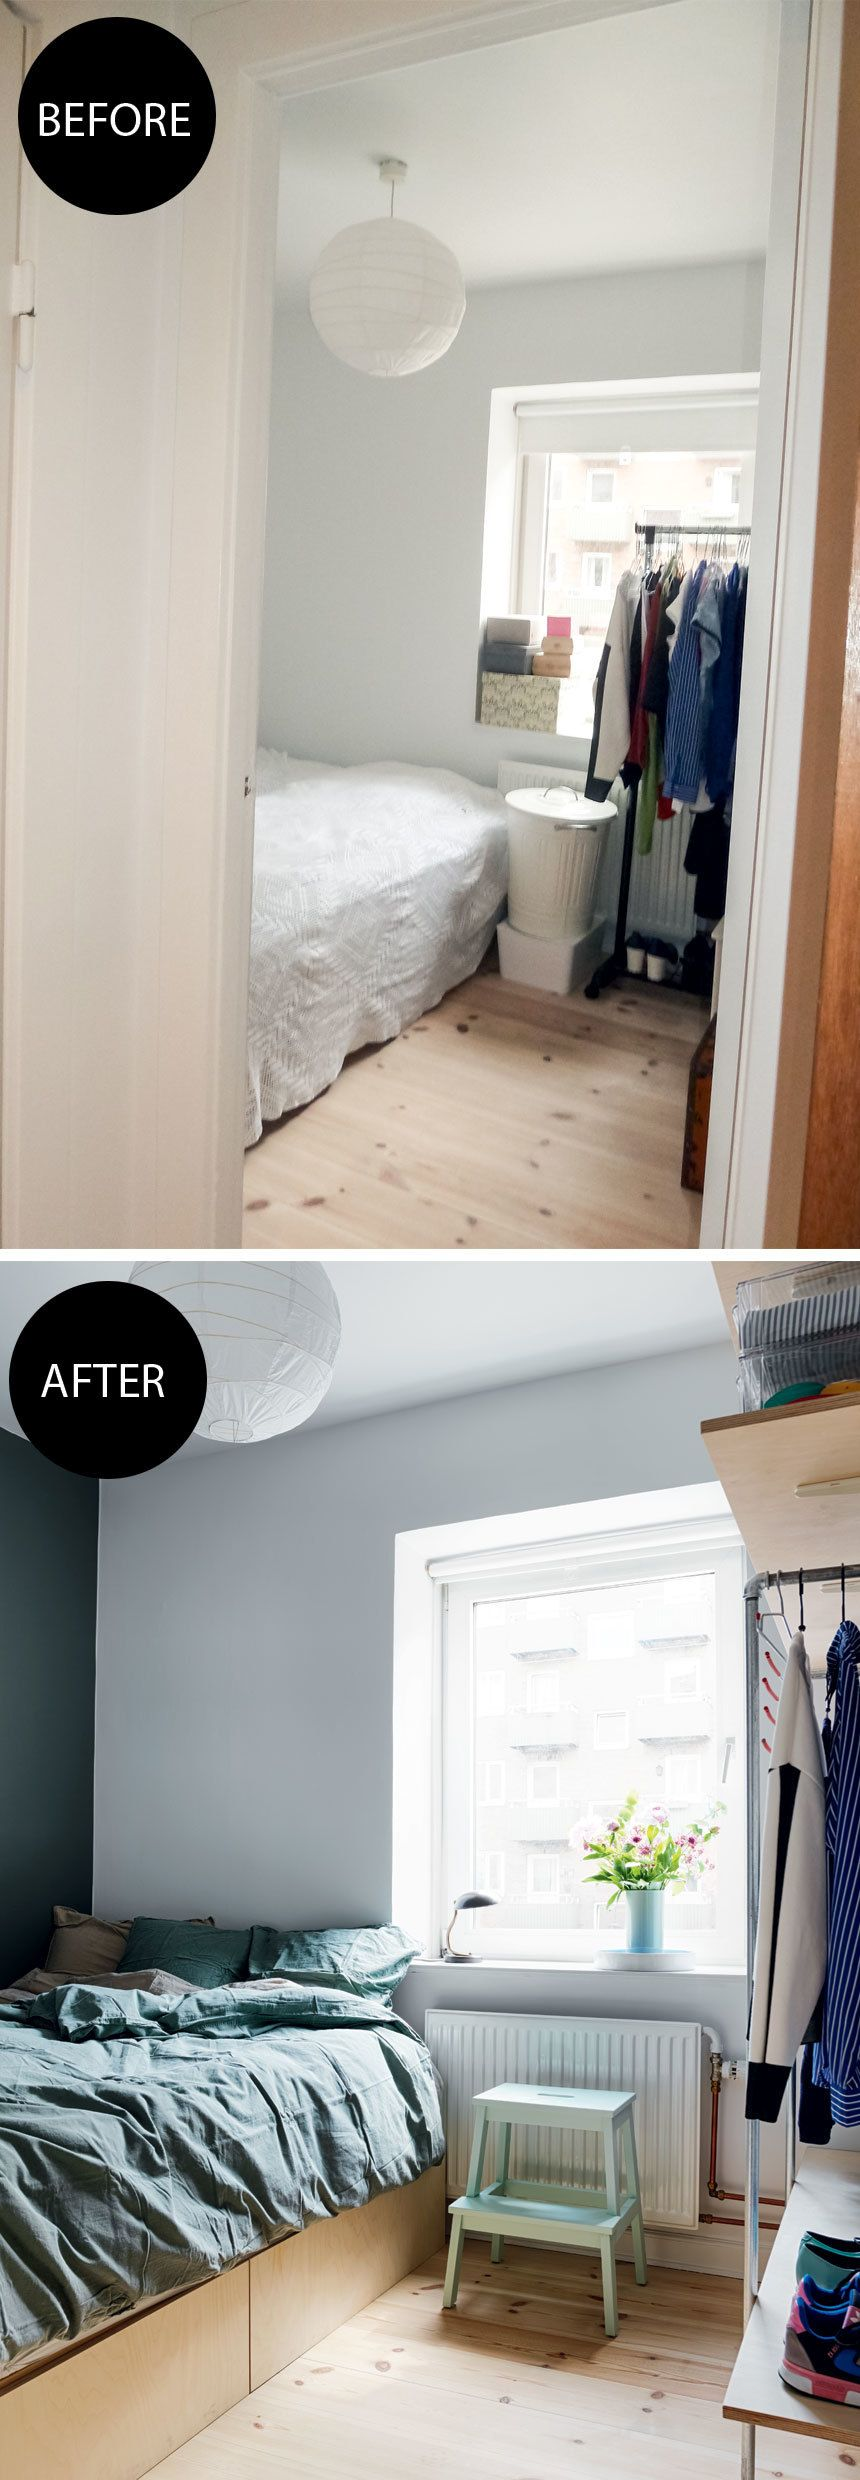 This small bedroom was remodeled with smart storage solutions and